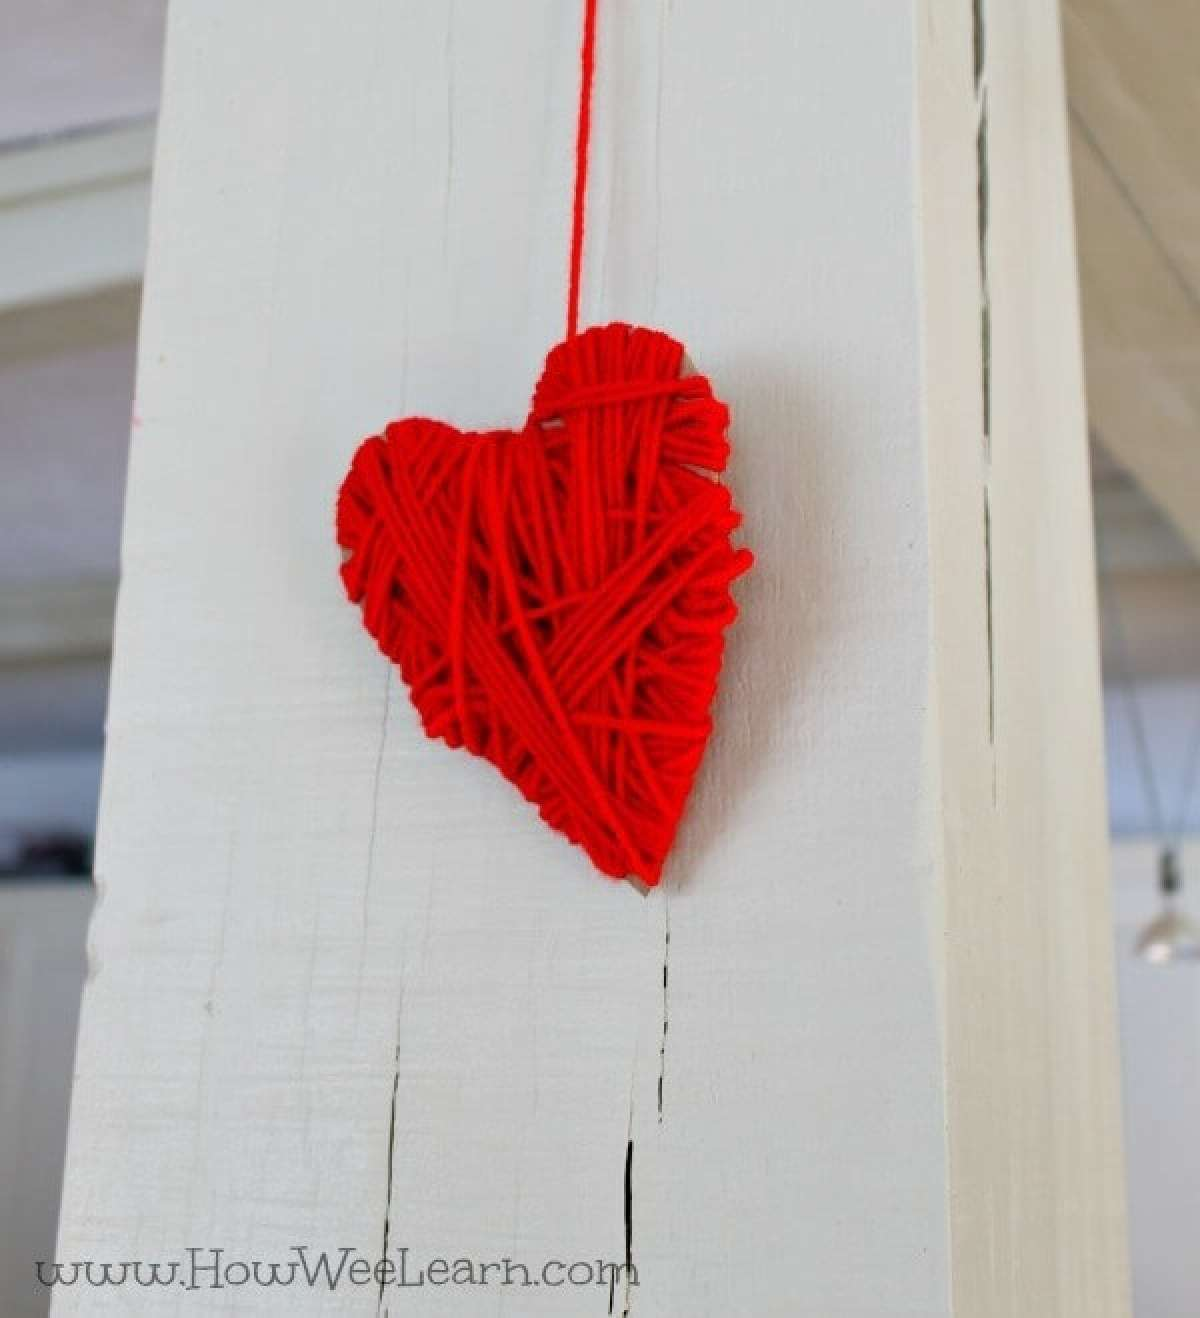 valentines decorations share s day for ideas and pinterest romantic valentine homebnc best decor designs